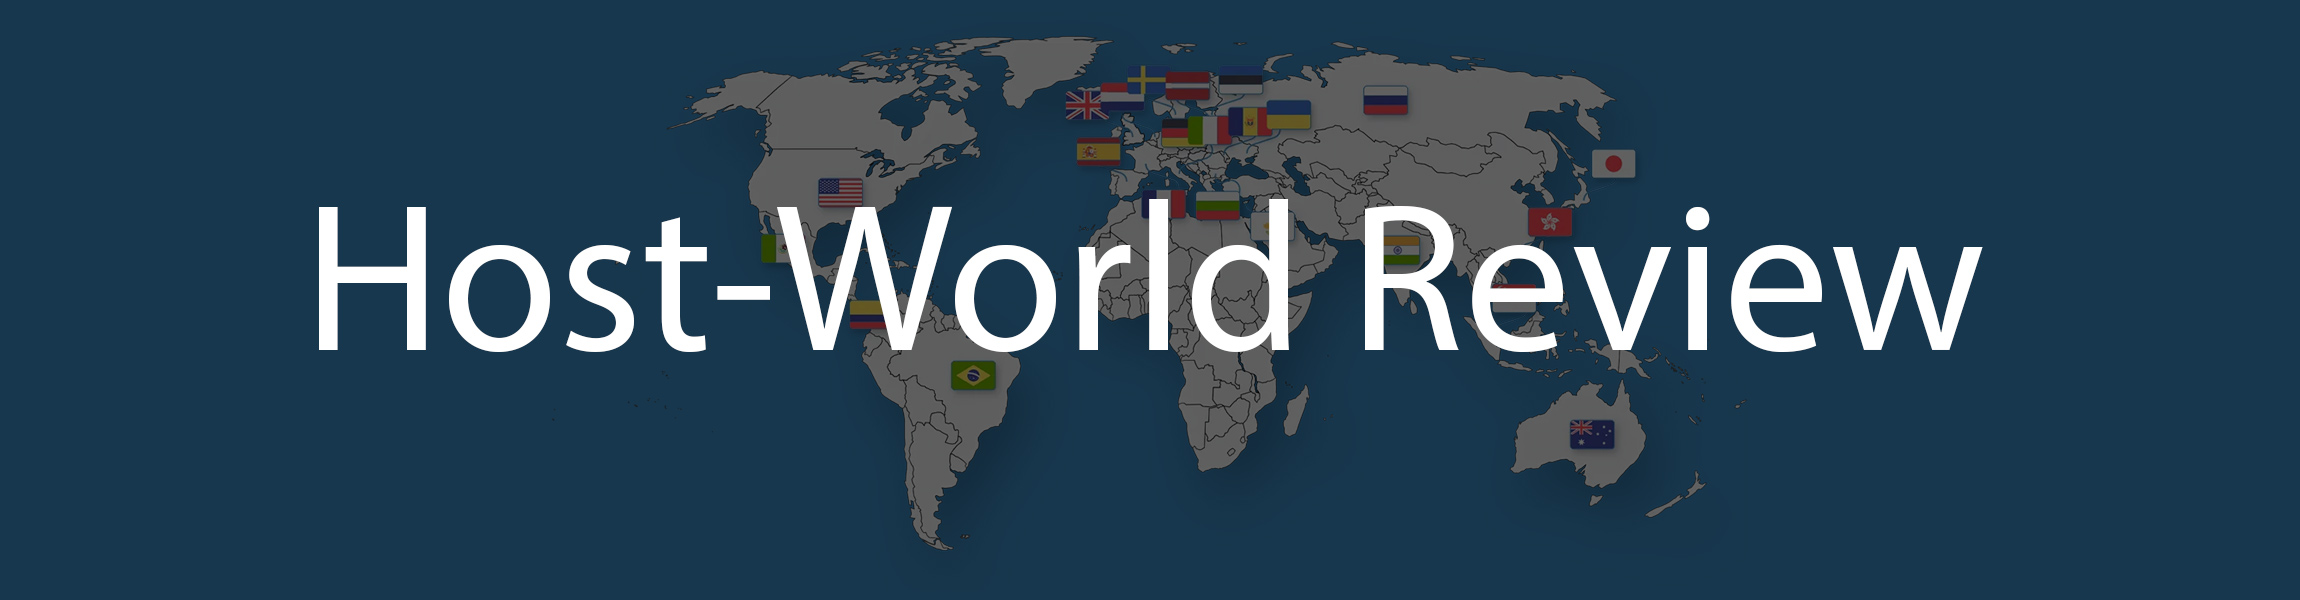 host world review